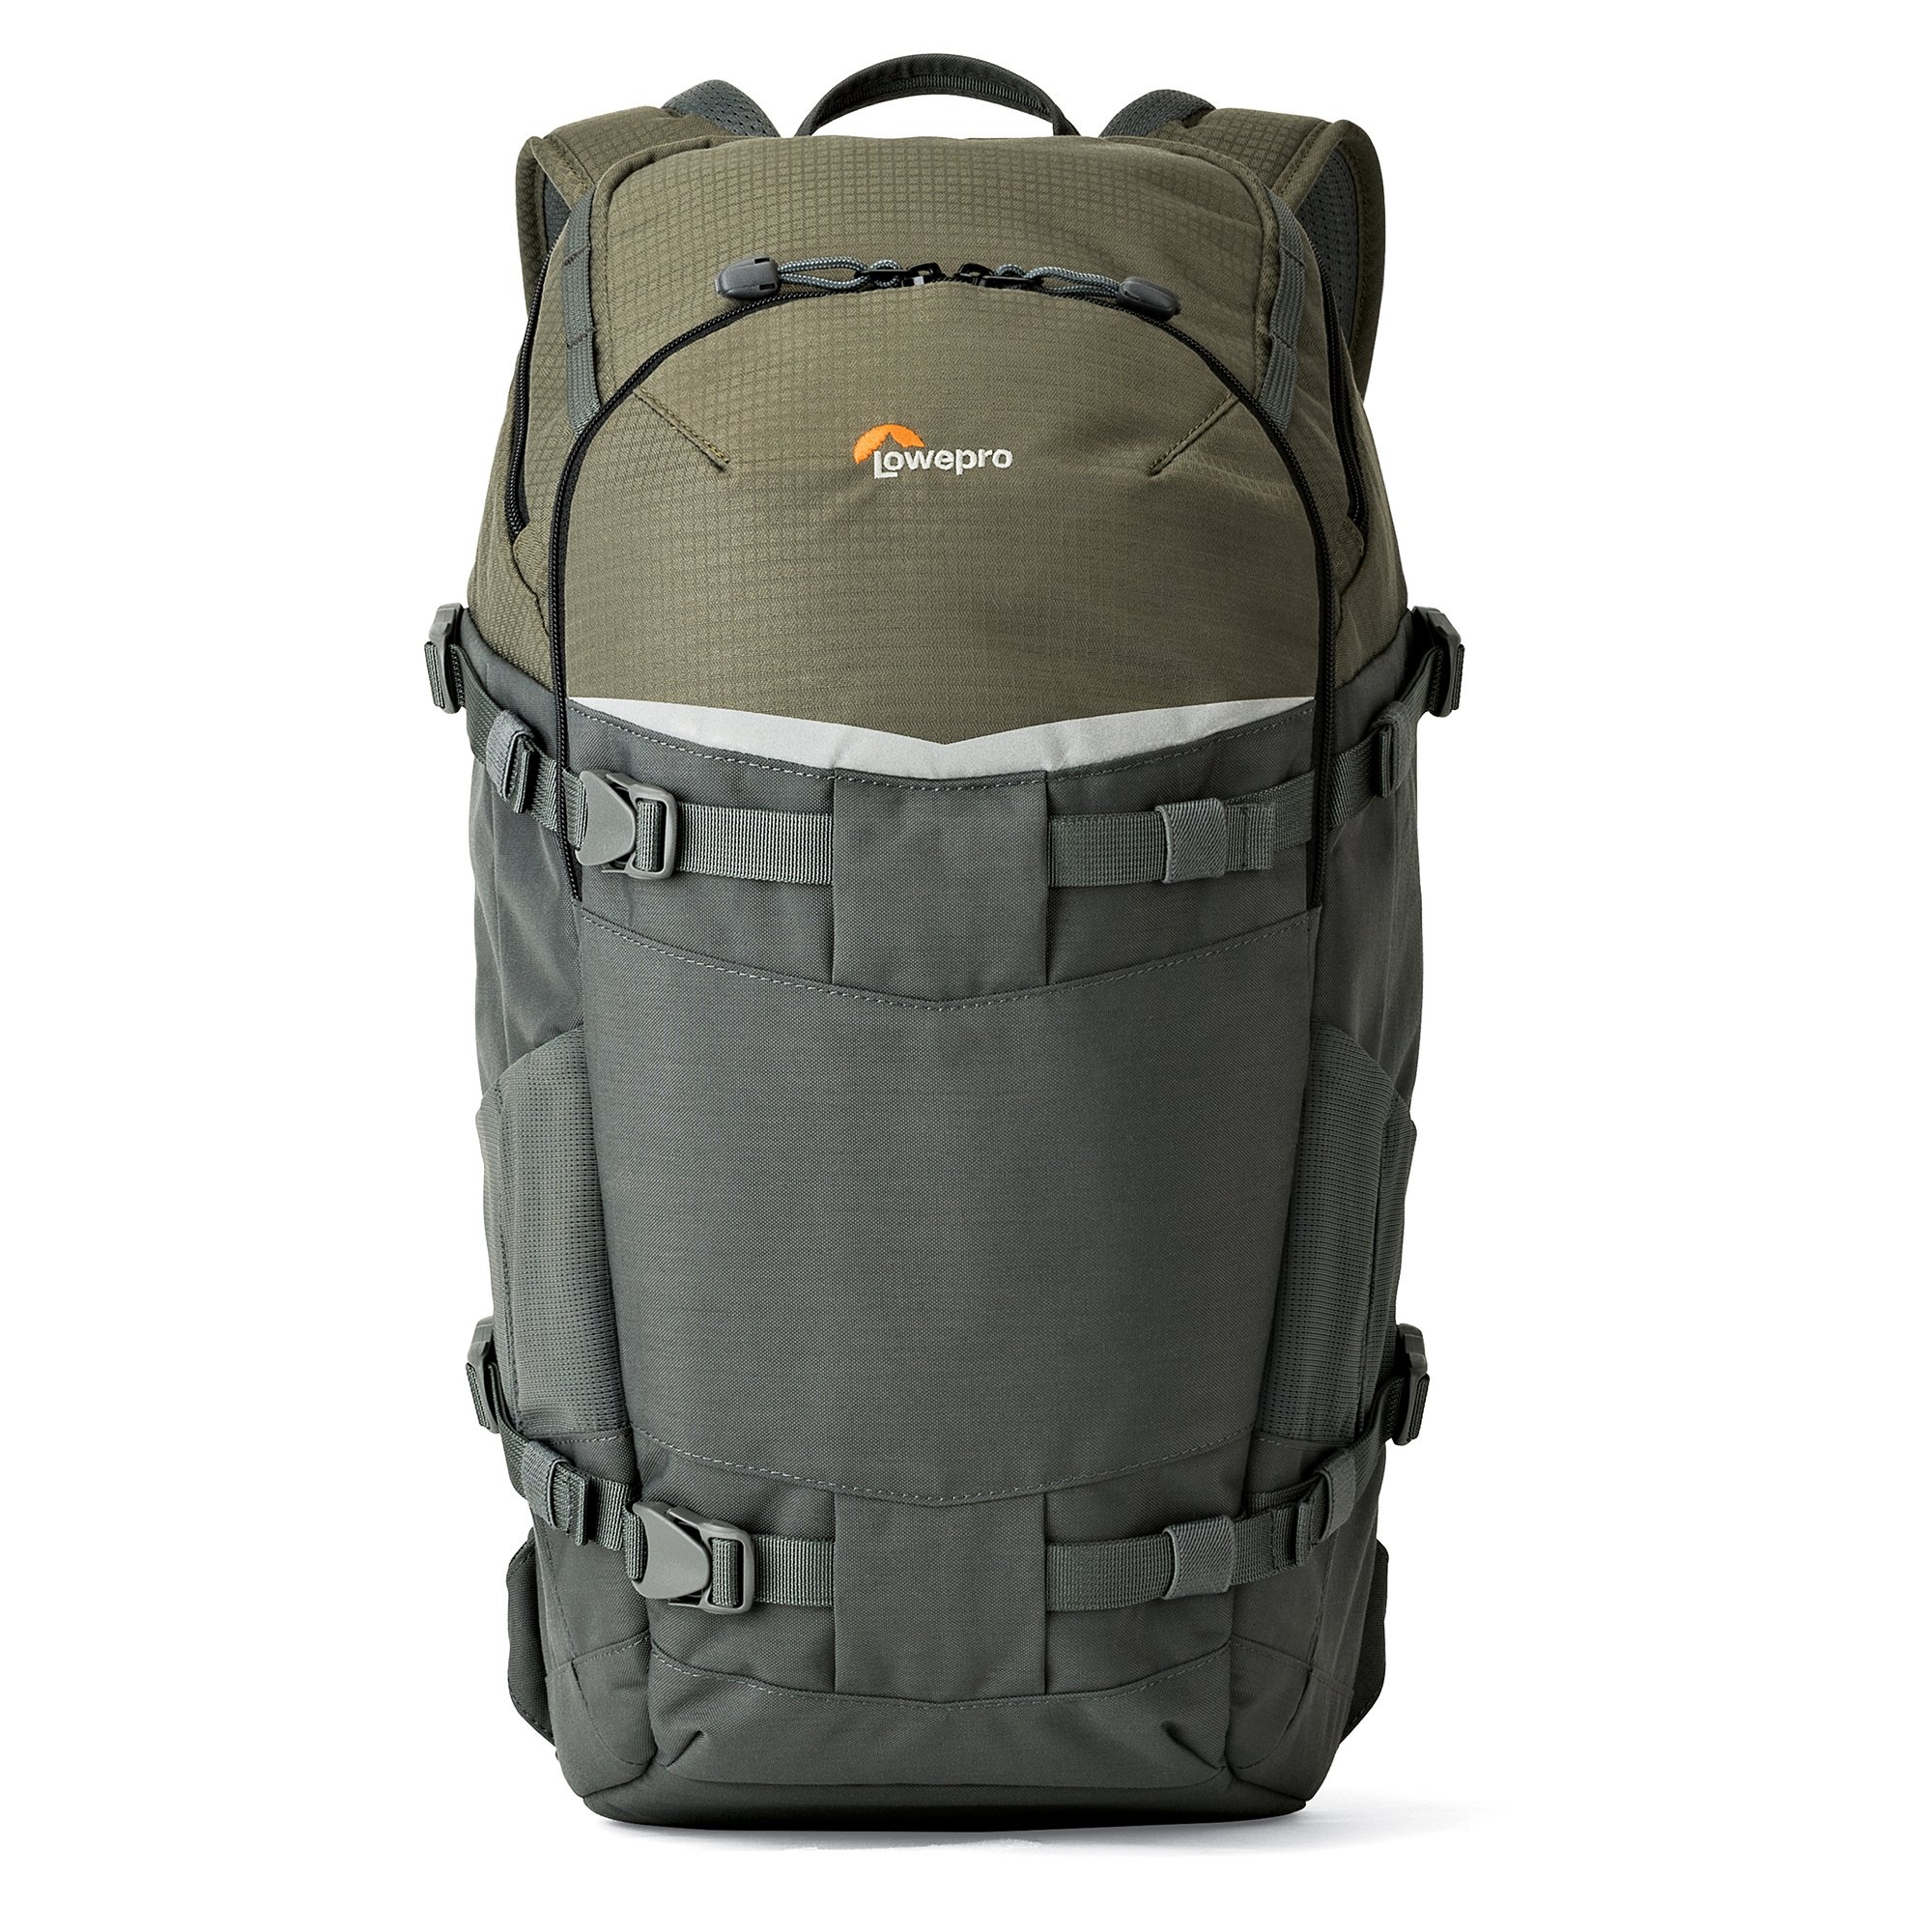 Lowepro Flipside Trek BP 350 AW. Large Outdoor Camera Backpack for DSLR and DJI Mavic Pro Drone w/ Rain Cover and Tablet Pocket